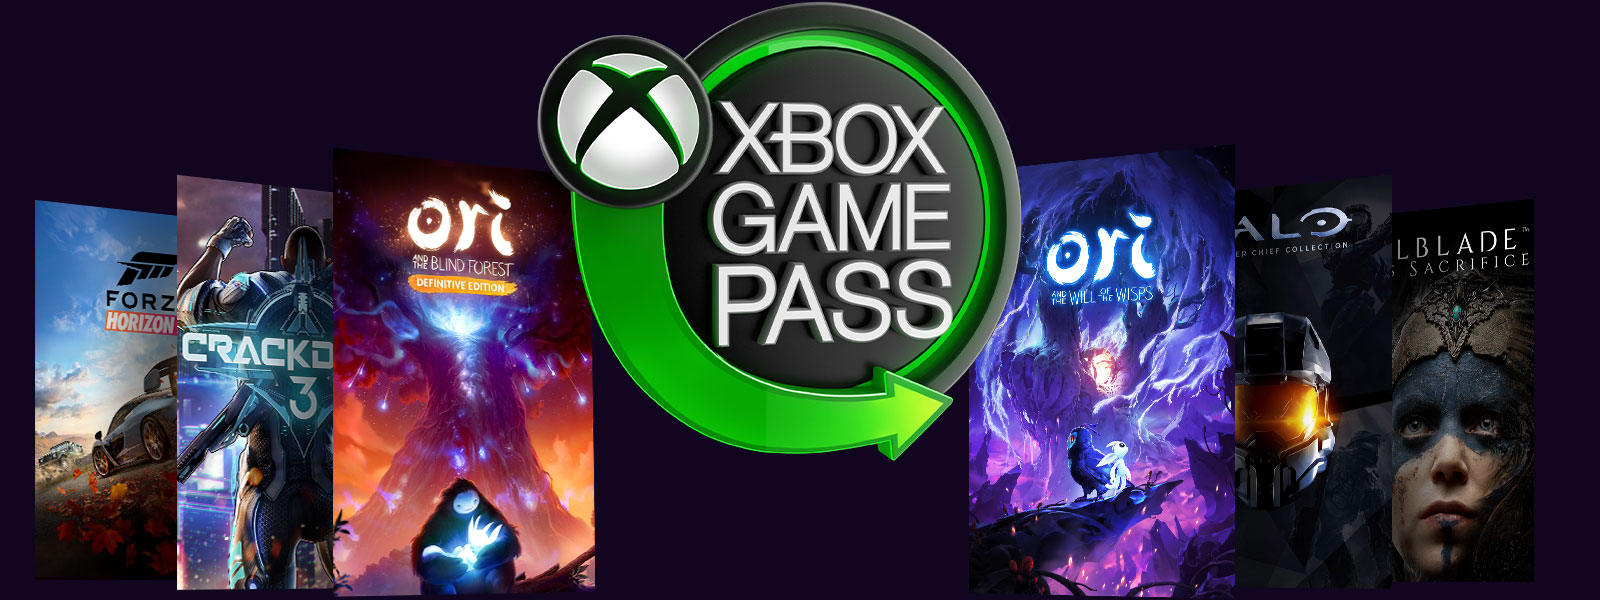 Logo Xbox Game Pass avec photo de la boîte d'Ori and the Will of the Wisps, Ori and the Blind Forest, Crackdown 3, Halo, Forza Horizon 4, et Hellblade